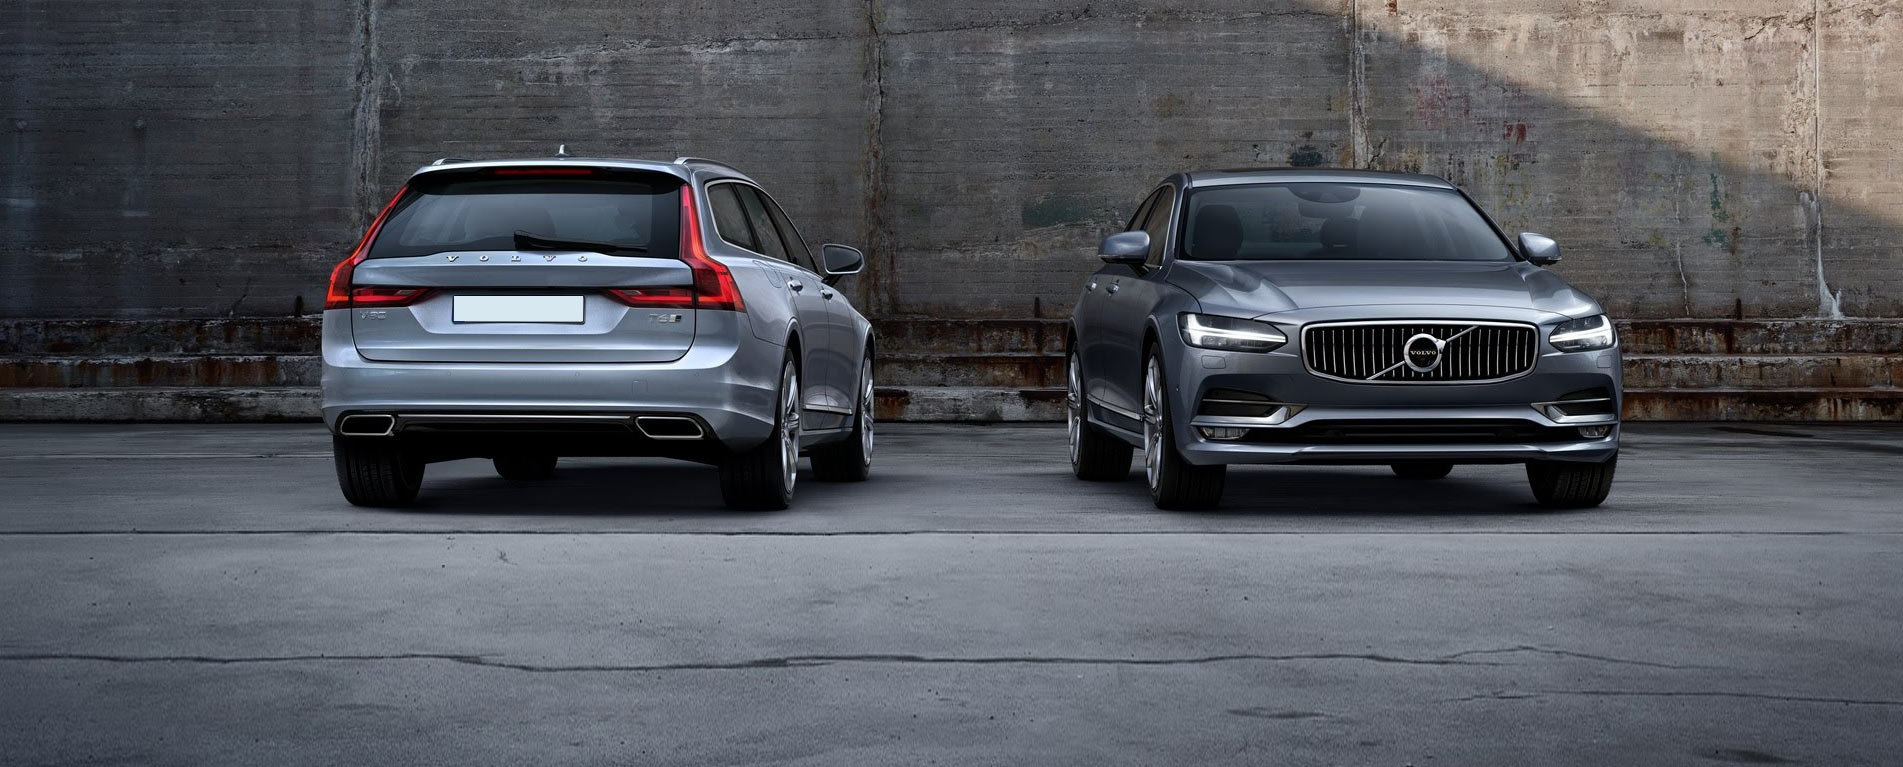 cranston ri volvo new htm index cars lease in inventory sale suvs for dealers